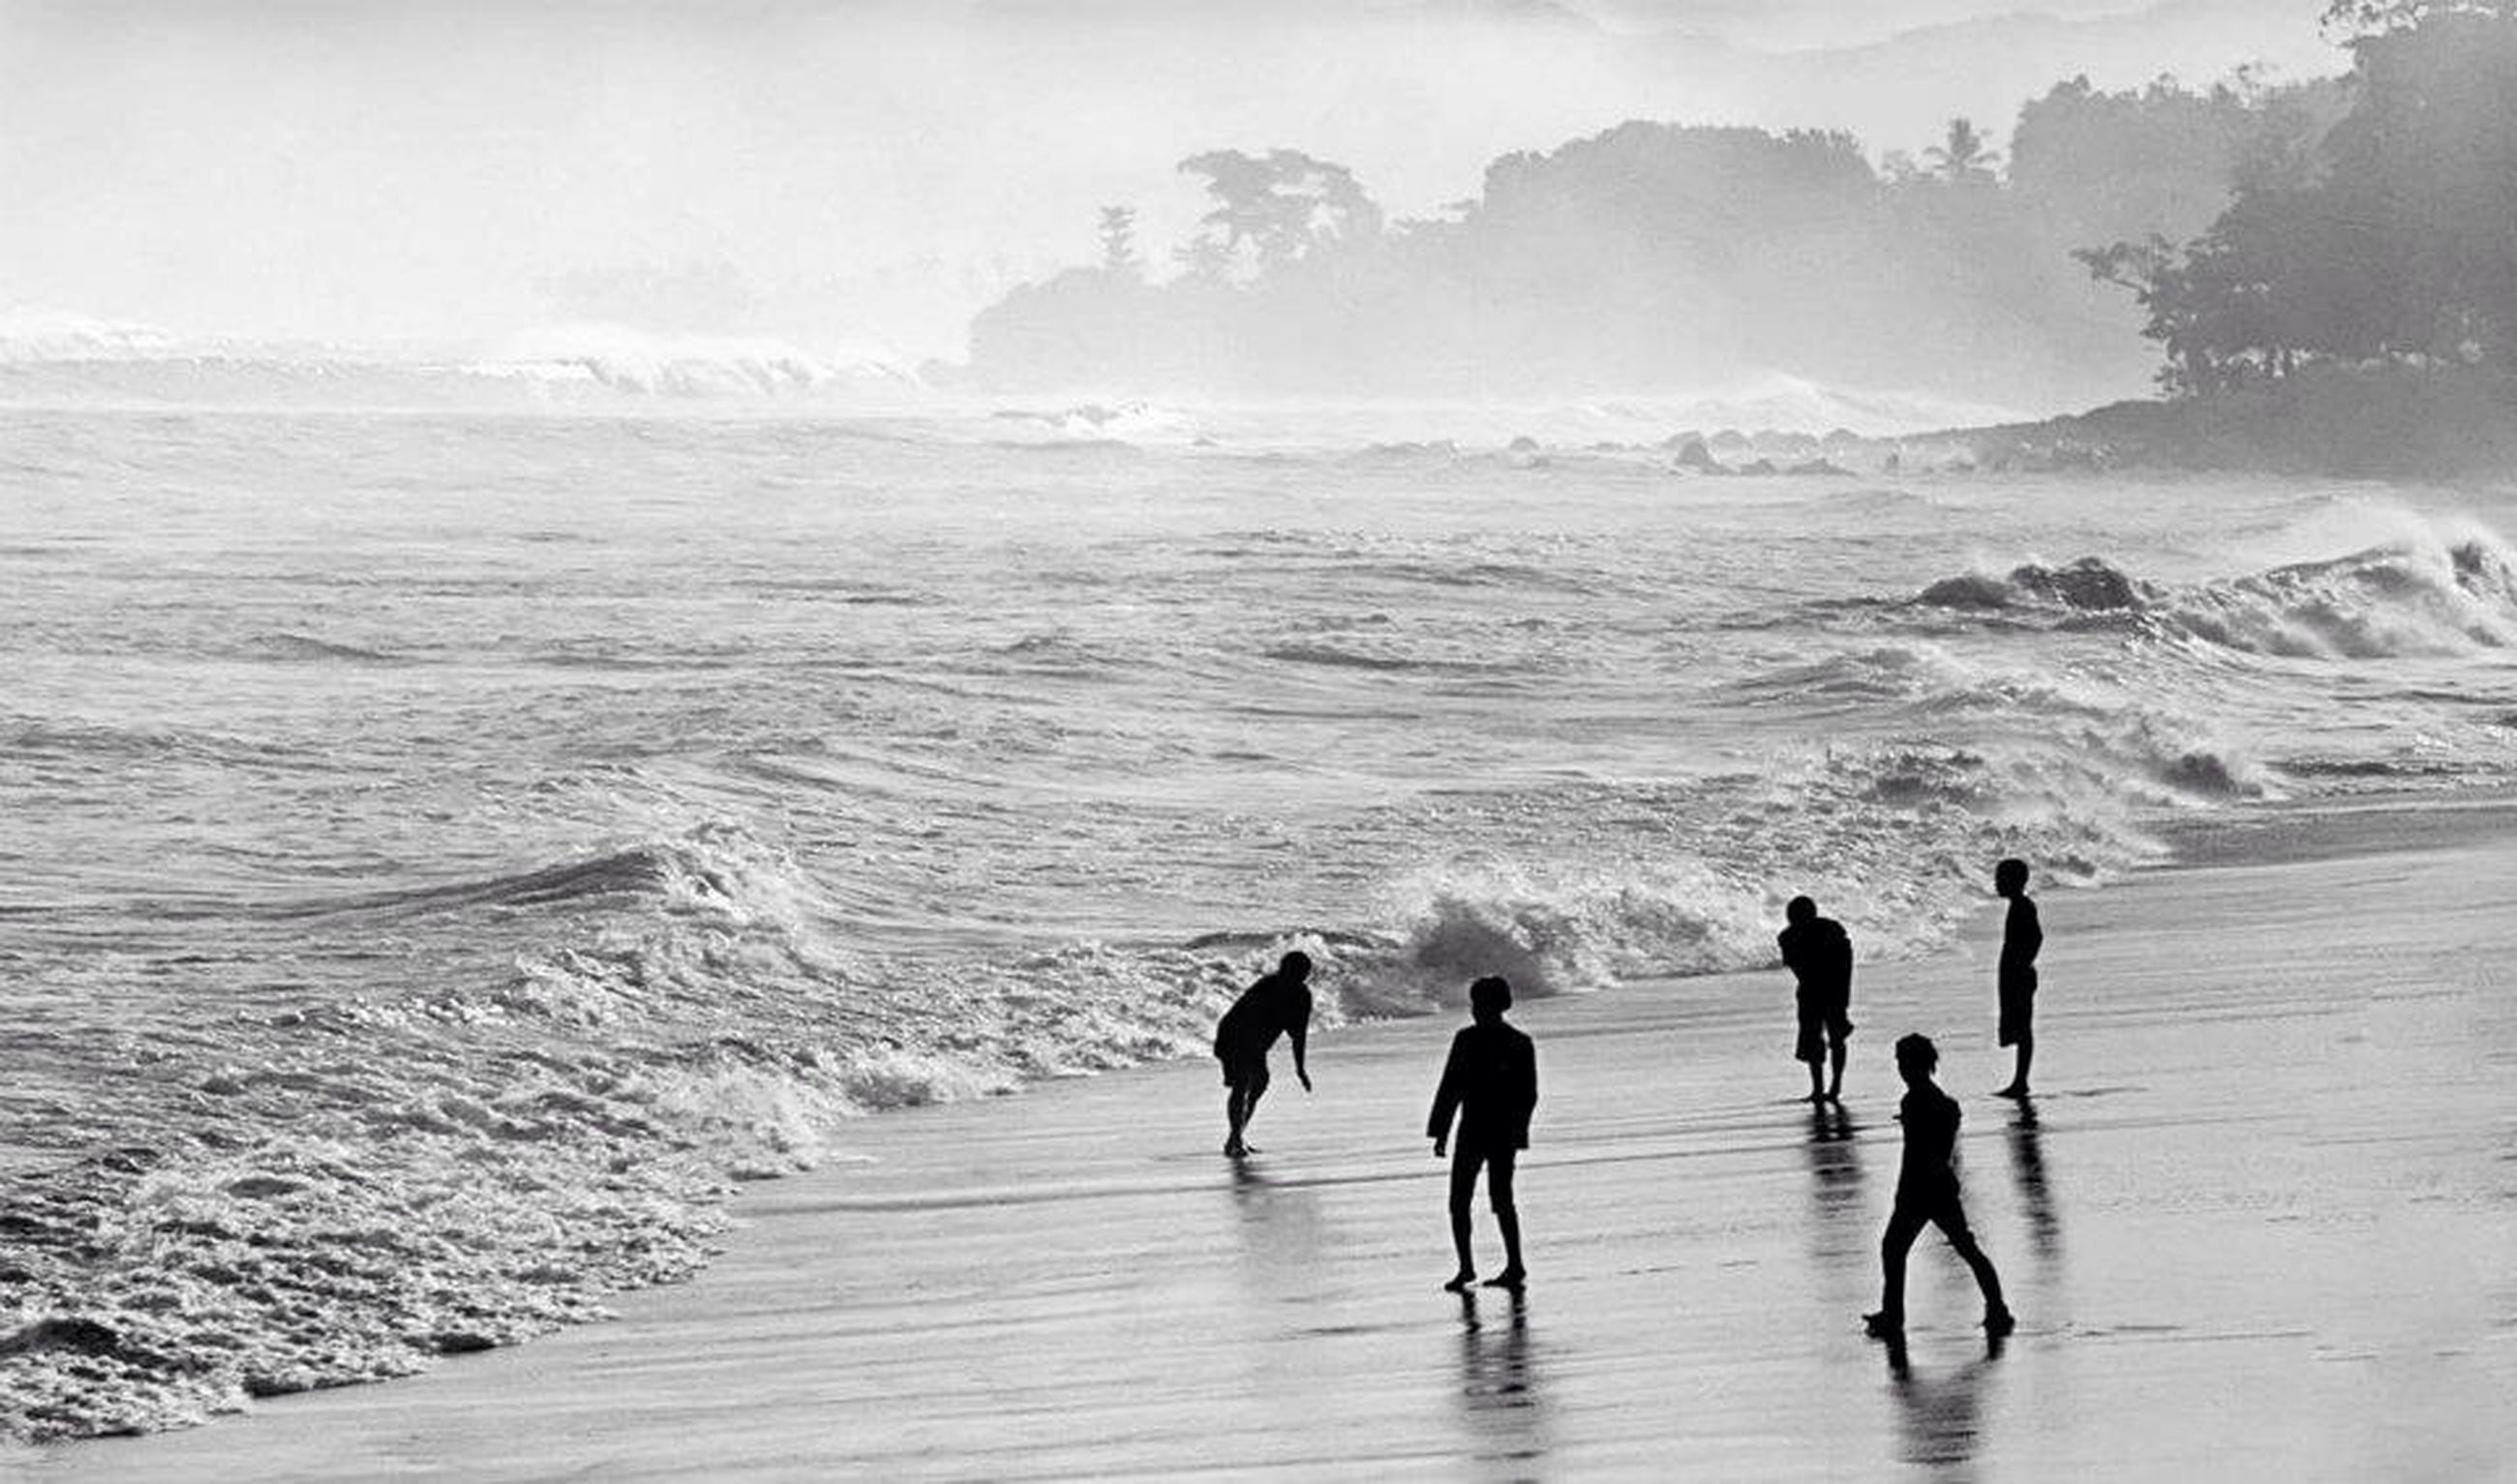 water, sea, lifestyles, leisure activity, beach, vacations, men, walking, full length, shore, wave, scenics, person, beauty in nature, large group of people, nature, tourism, the way forward, tourist